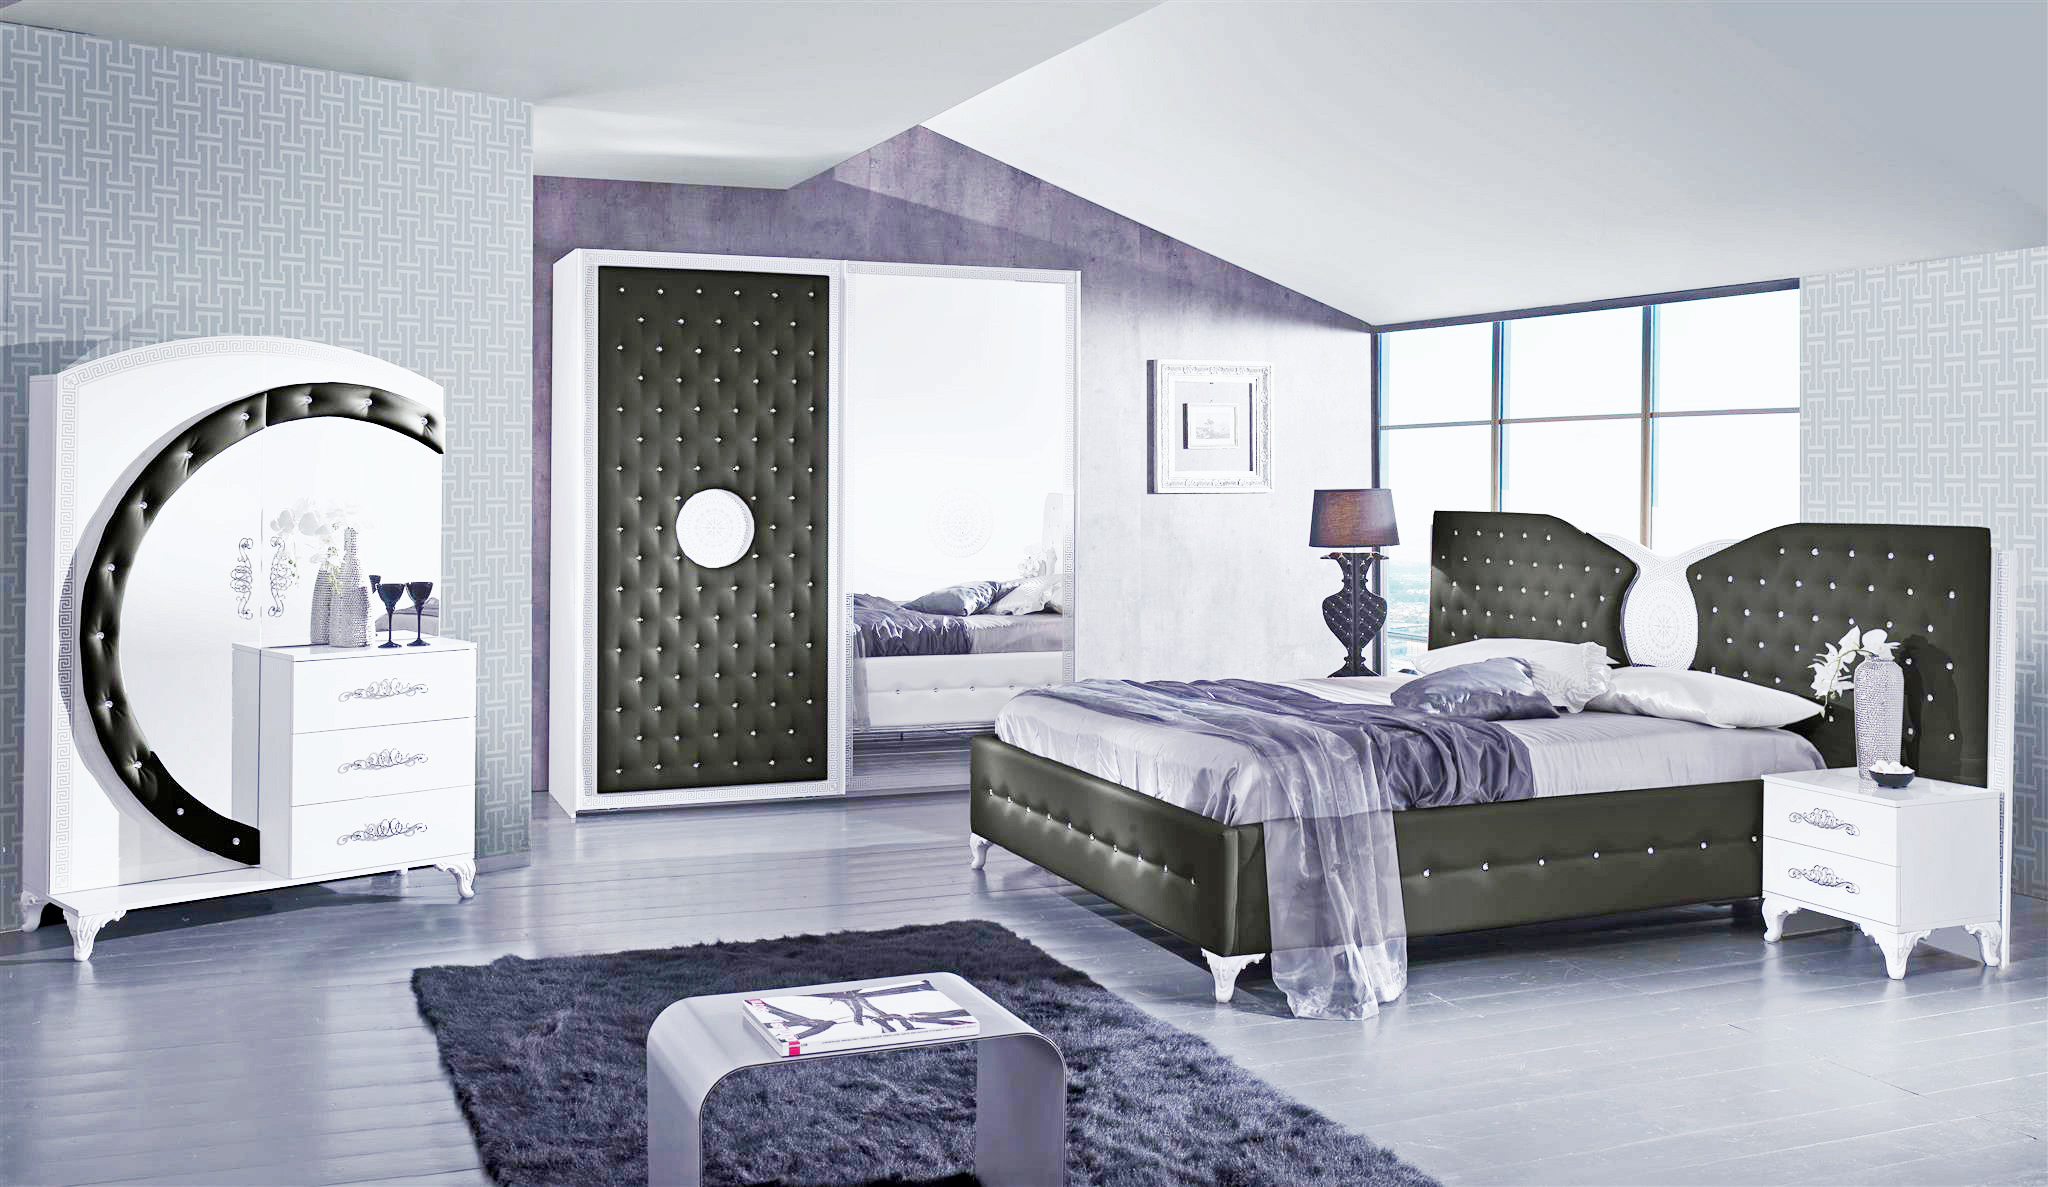 sch nes schlafzimmer modern bettdecken welche gr en gibt es schlafzimmer schrankwand 2. Black Bedroom Furniture Sets. Home Design Ideas